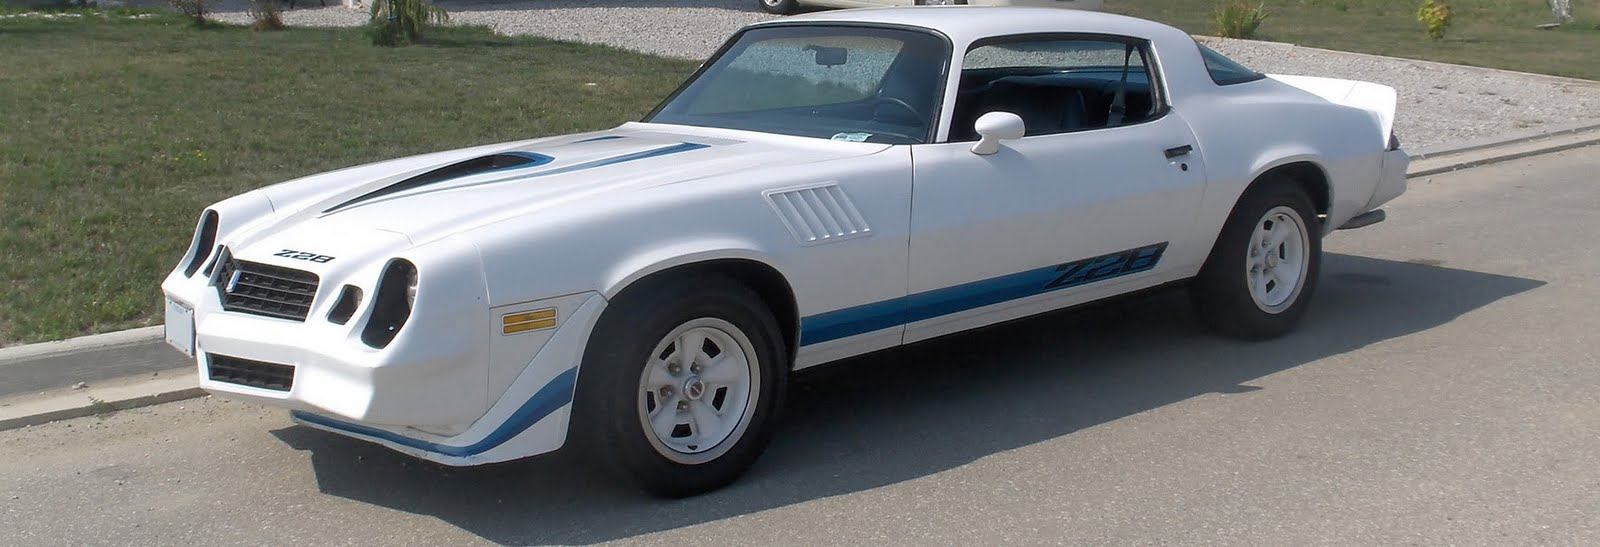 My Perfect Chevrolet Camaro Z28 3dtuning Probably The Best Car 1968 Caprice Wiring Diagram Coupe 1979